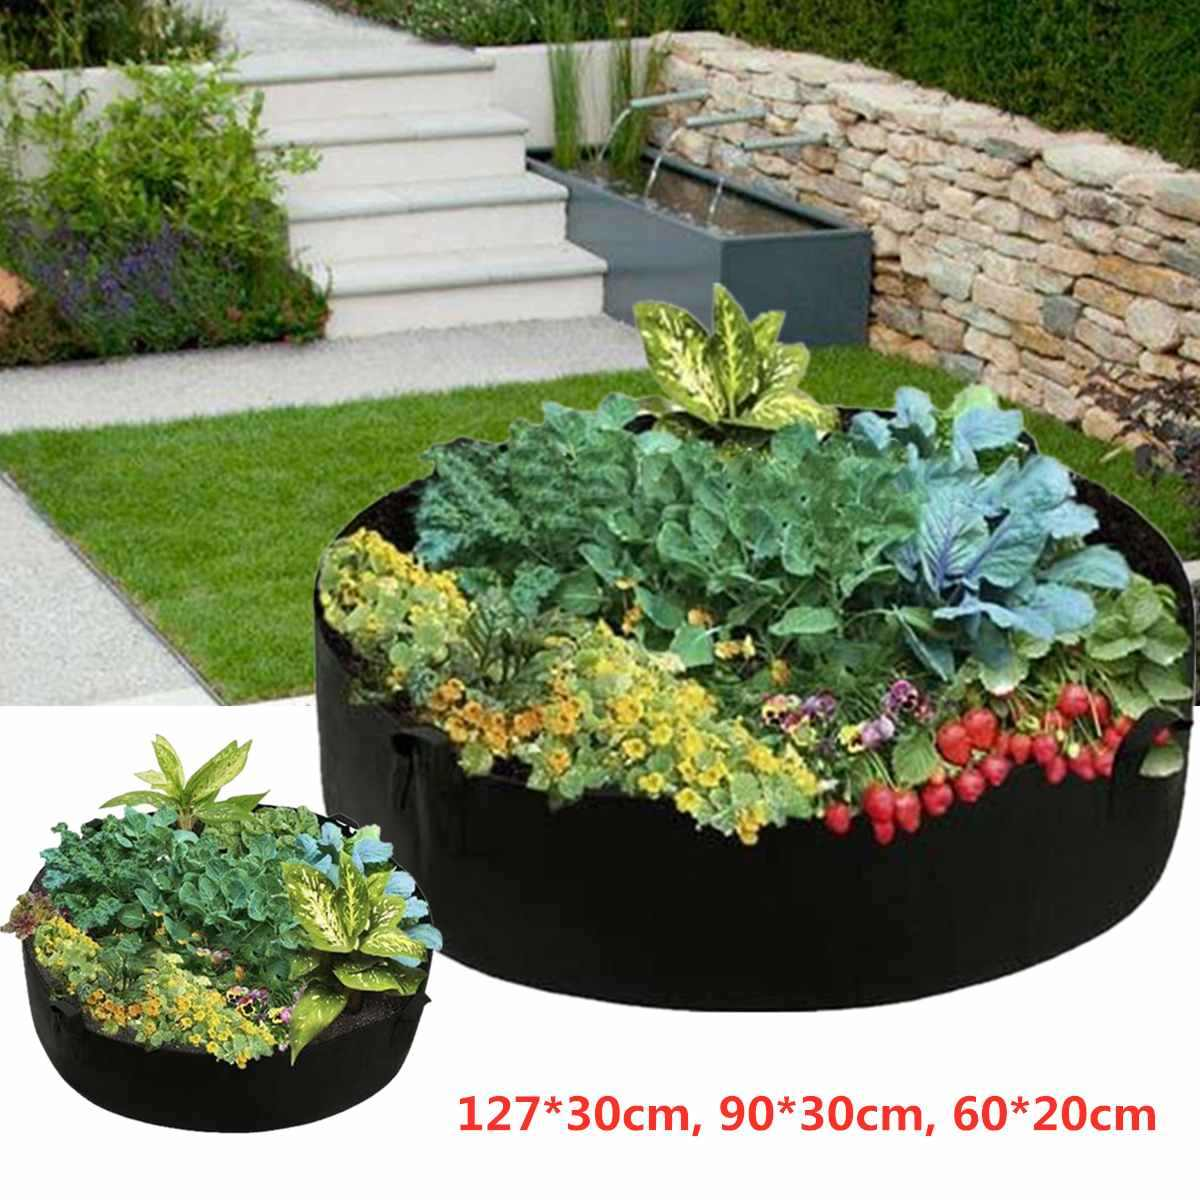 Garden Raised Plant Bed Flower Planter Elevated Vegetable Box Planting Grow Bag Round Planting Container GrowBags Nursery Pot